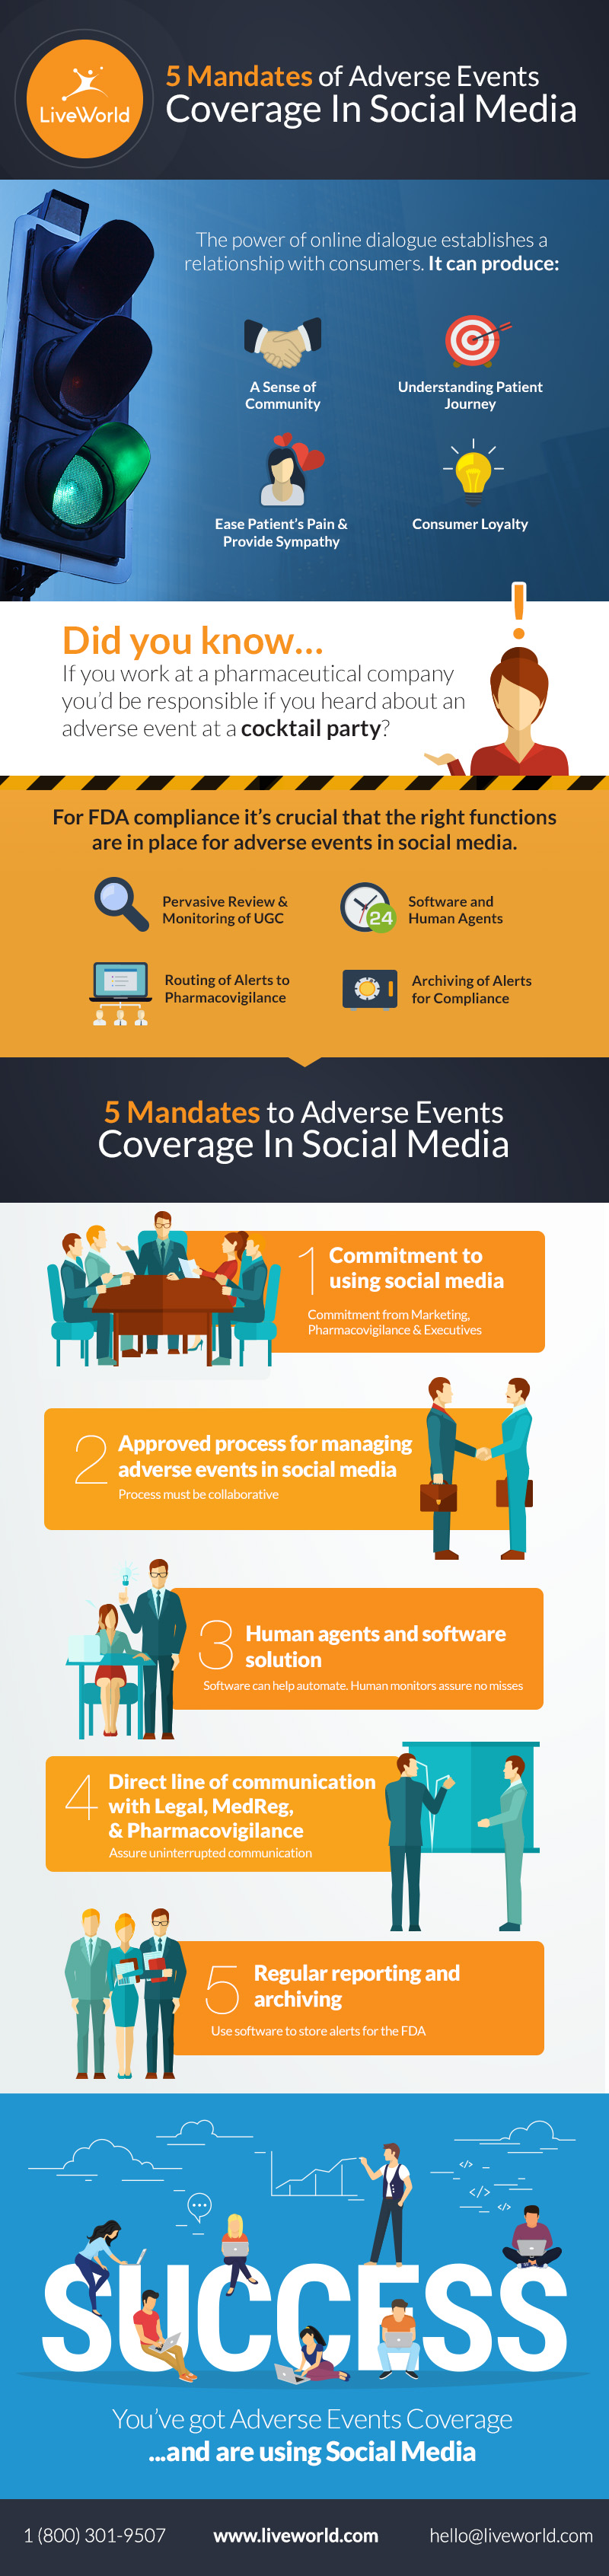 Managing Adverse Events in Social Media